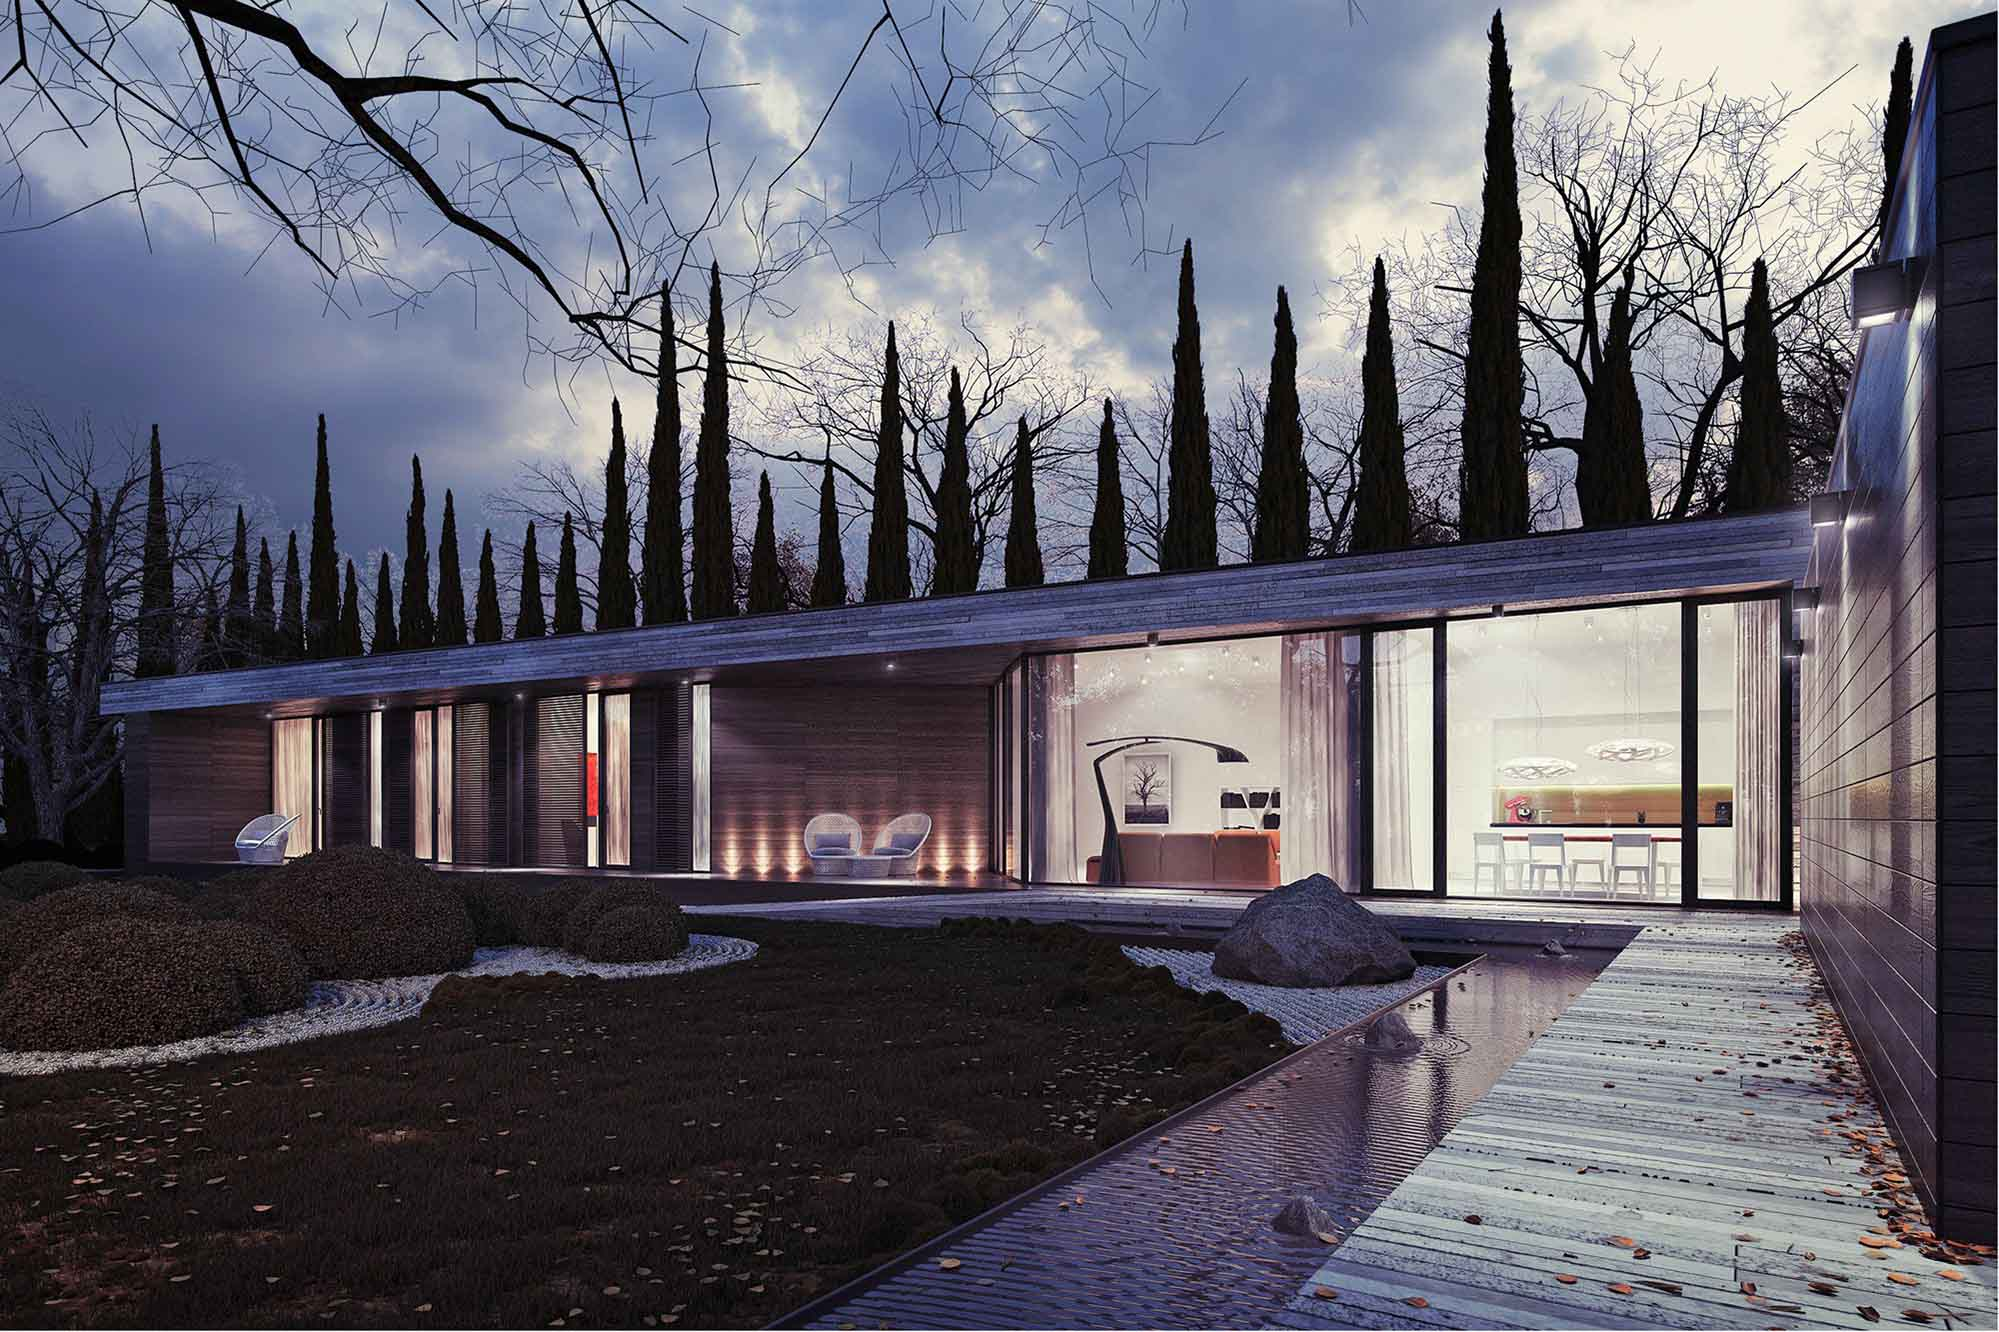 Horizontal_house_05_81.waw.pl-300dpi